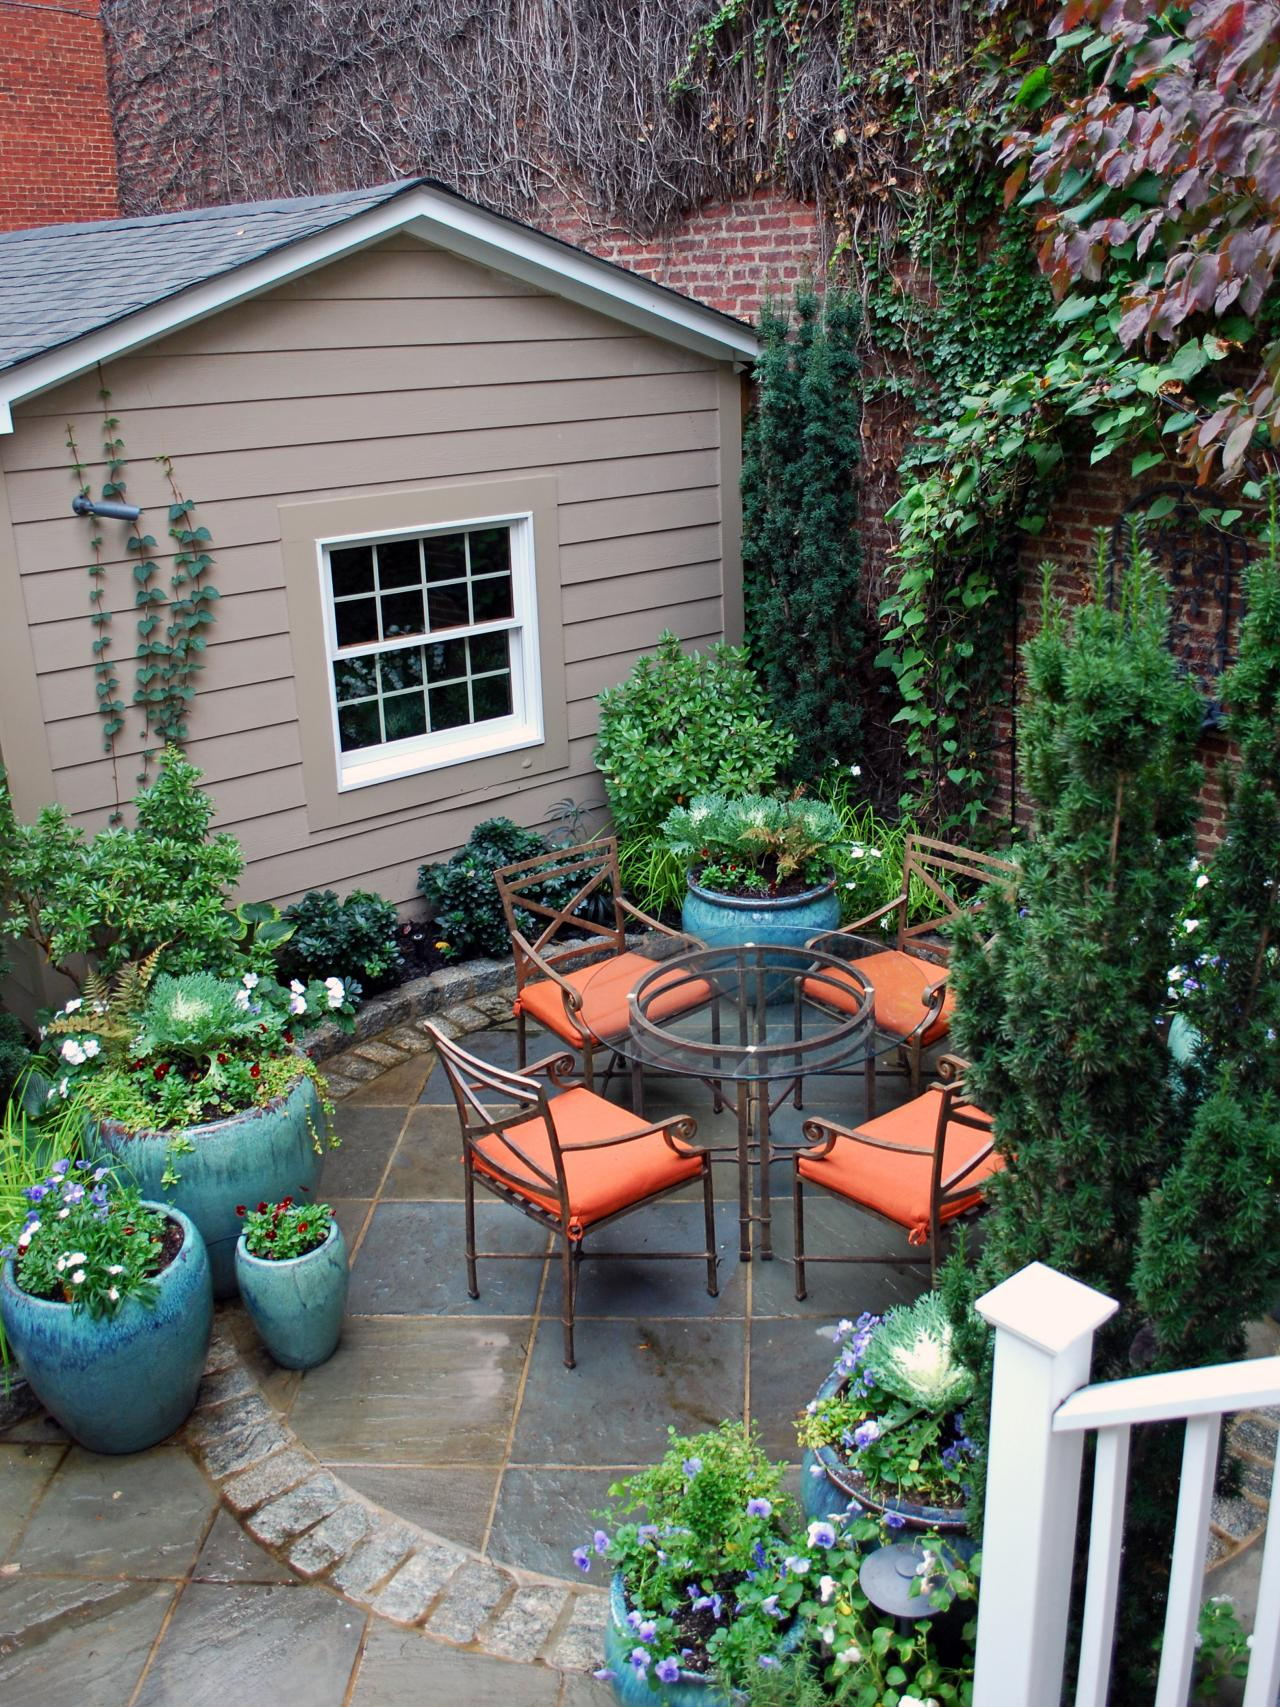 Optimize your small outdoor space hgtv for Small eating area ideas